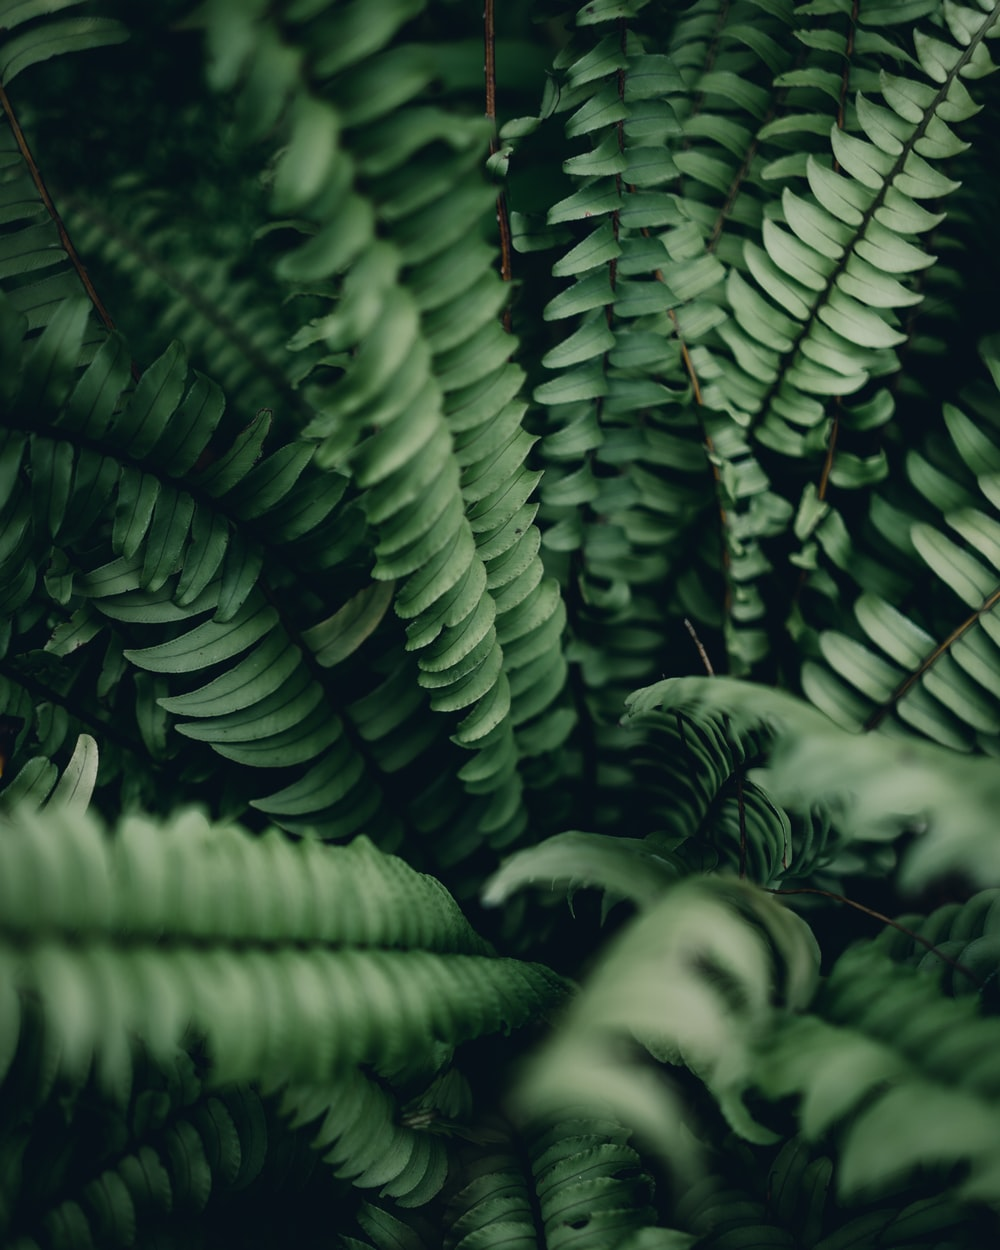 green fern plant in close-up photo